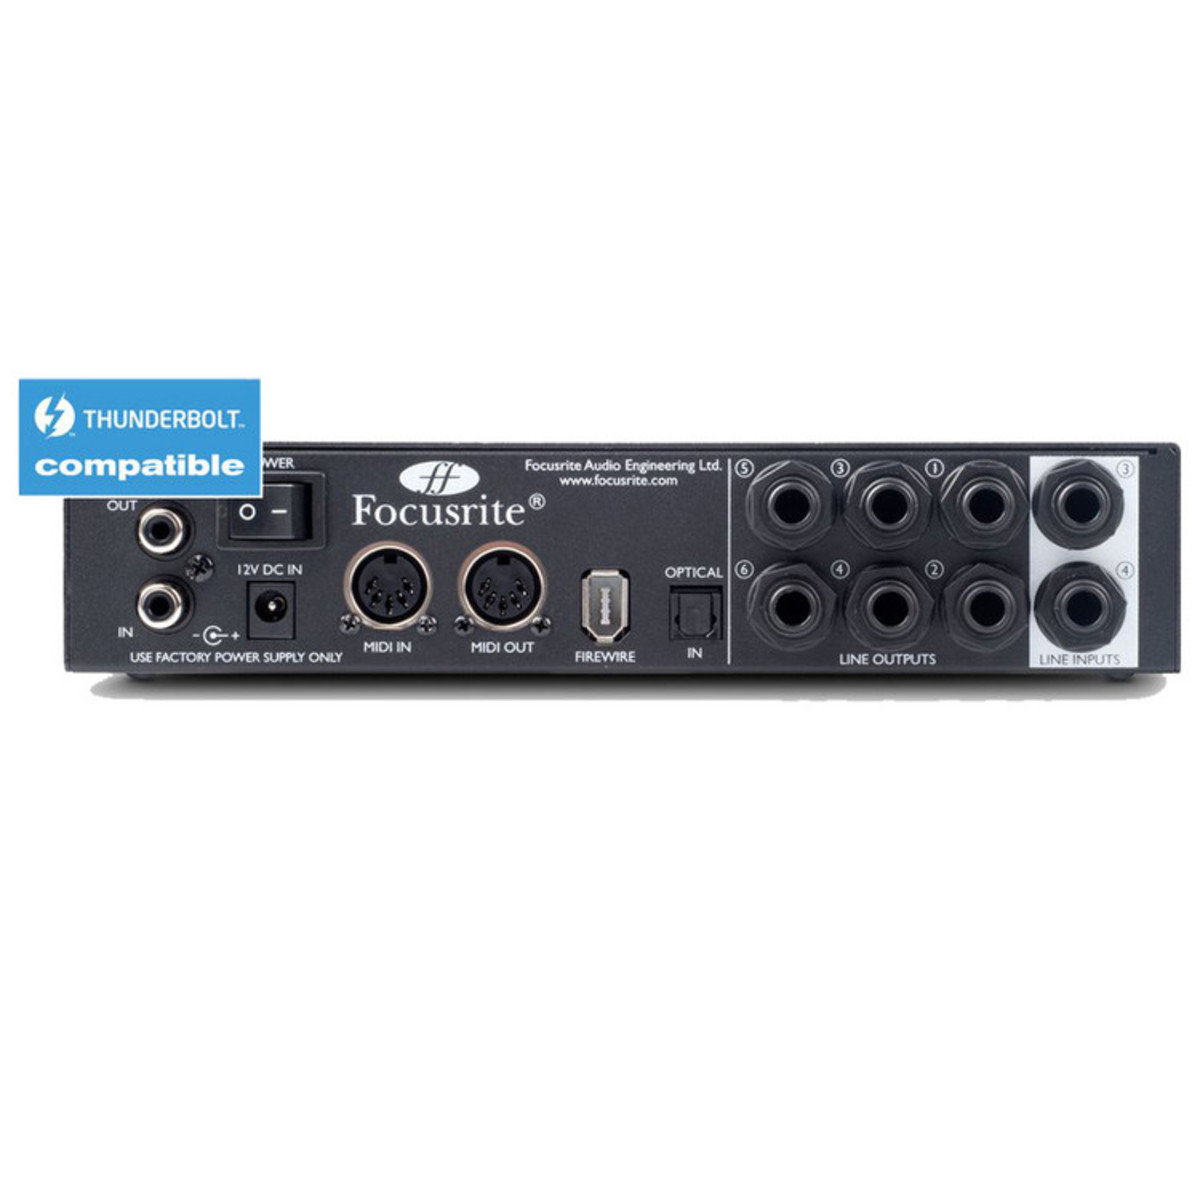 focusrite saffire pro 24 dsp firewire audio interface with dsp at. Black Bedroom Furniture Sets. Home Design Ideas